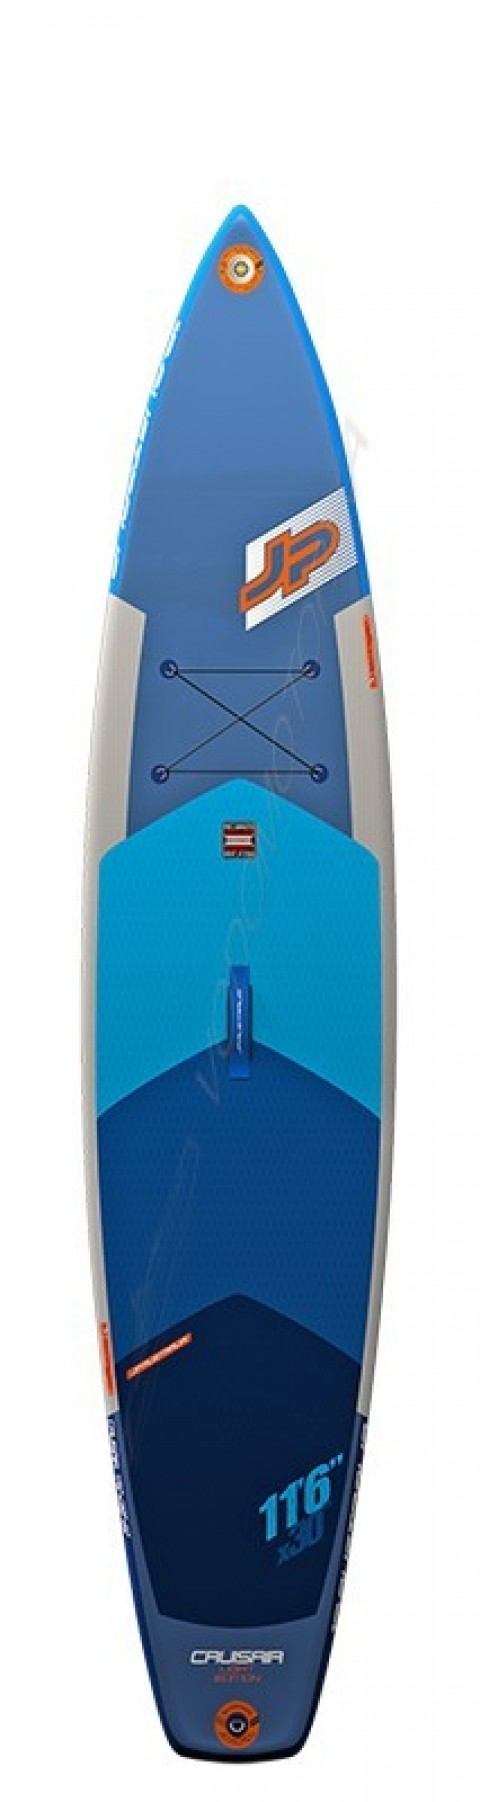 "Доска SUP JP CRUISAIR 12'6""x32"" LE"